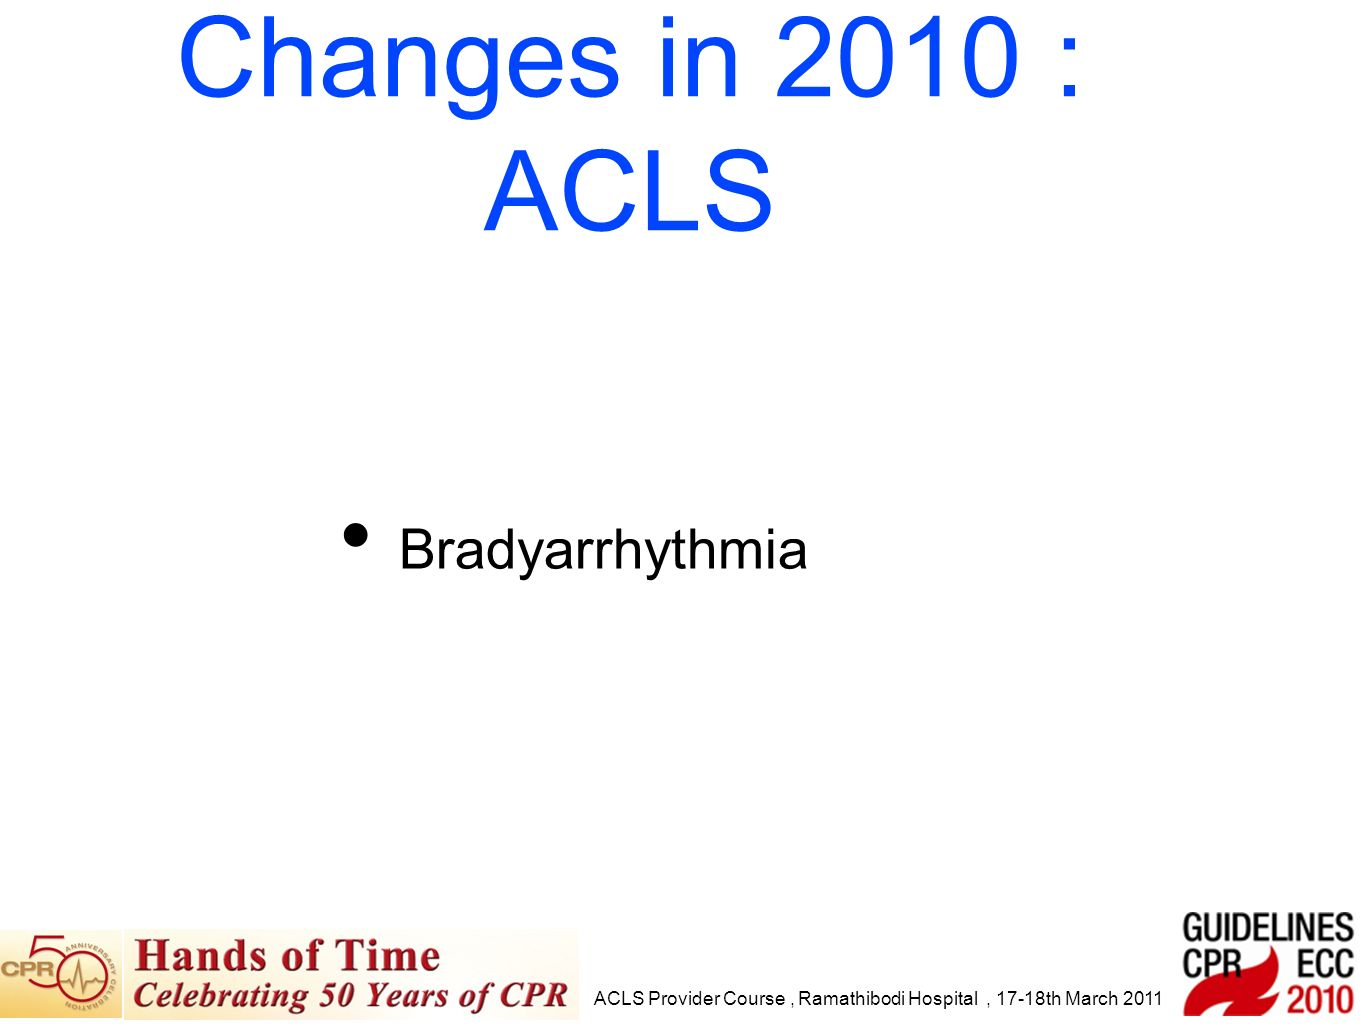 Bradyarrhythmia ACLS Provider Course, Ramathibodi Hospital, 17-18th March 2011 Changes in 2010 : ACLS